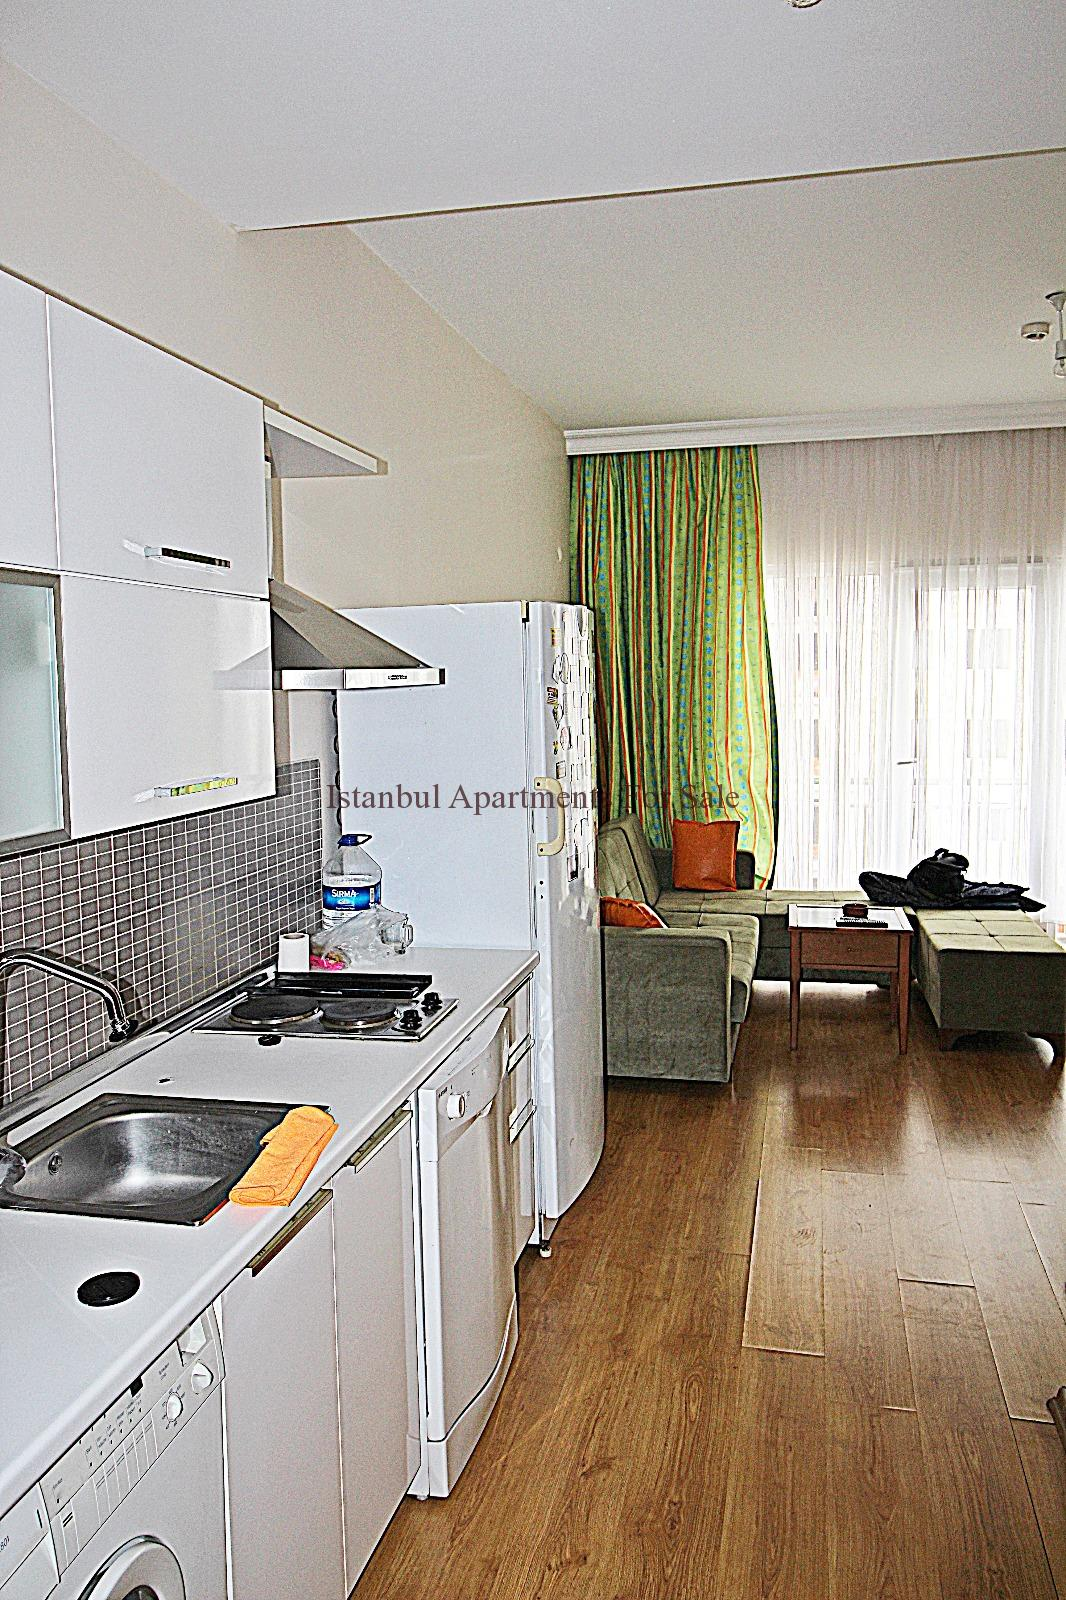 Cheap studio apartments in Istanbul for sale excellent ...